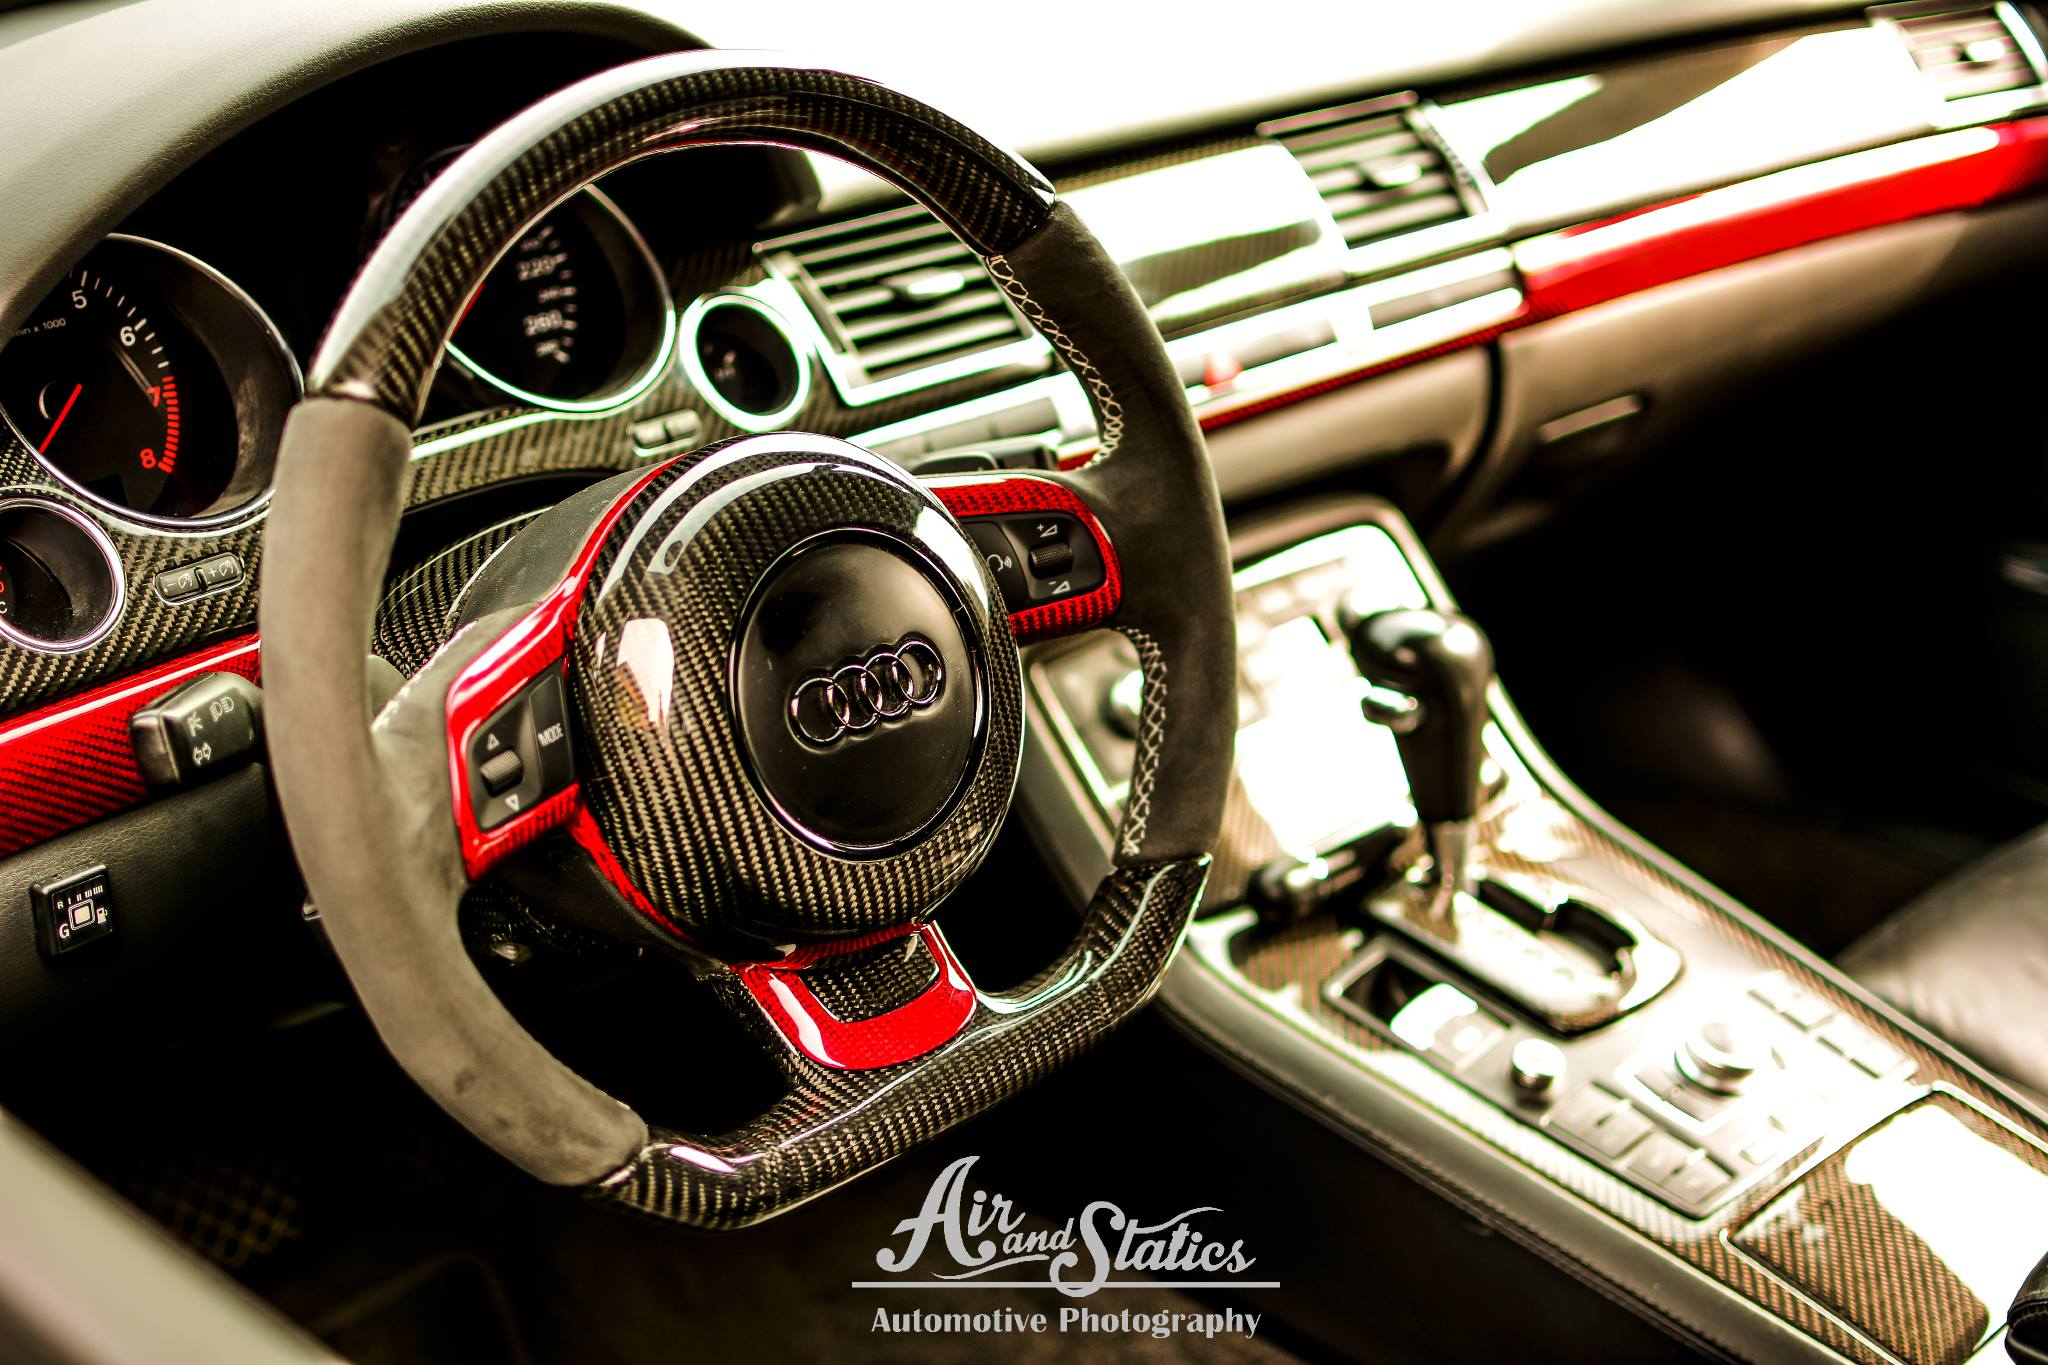 2004 Audi A8 D3 Gets Radi8 Wheels And Carbon Interior Looks Stunning Autoevolution